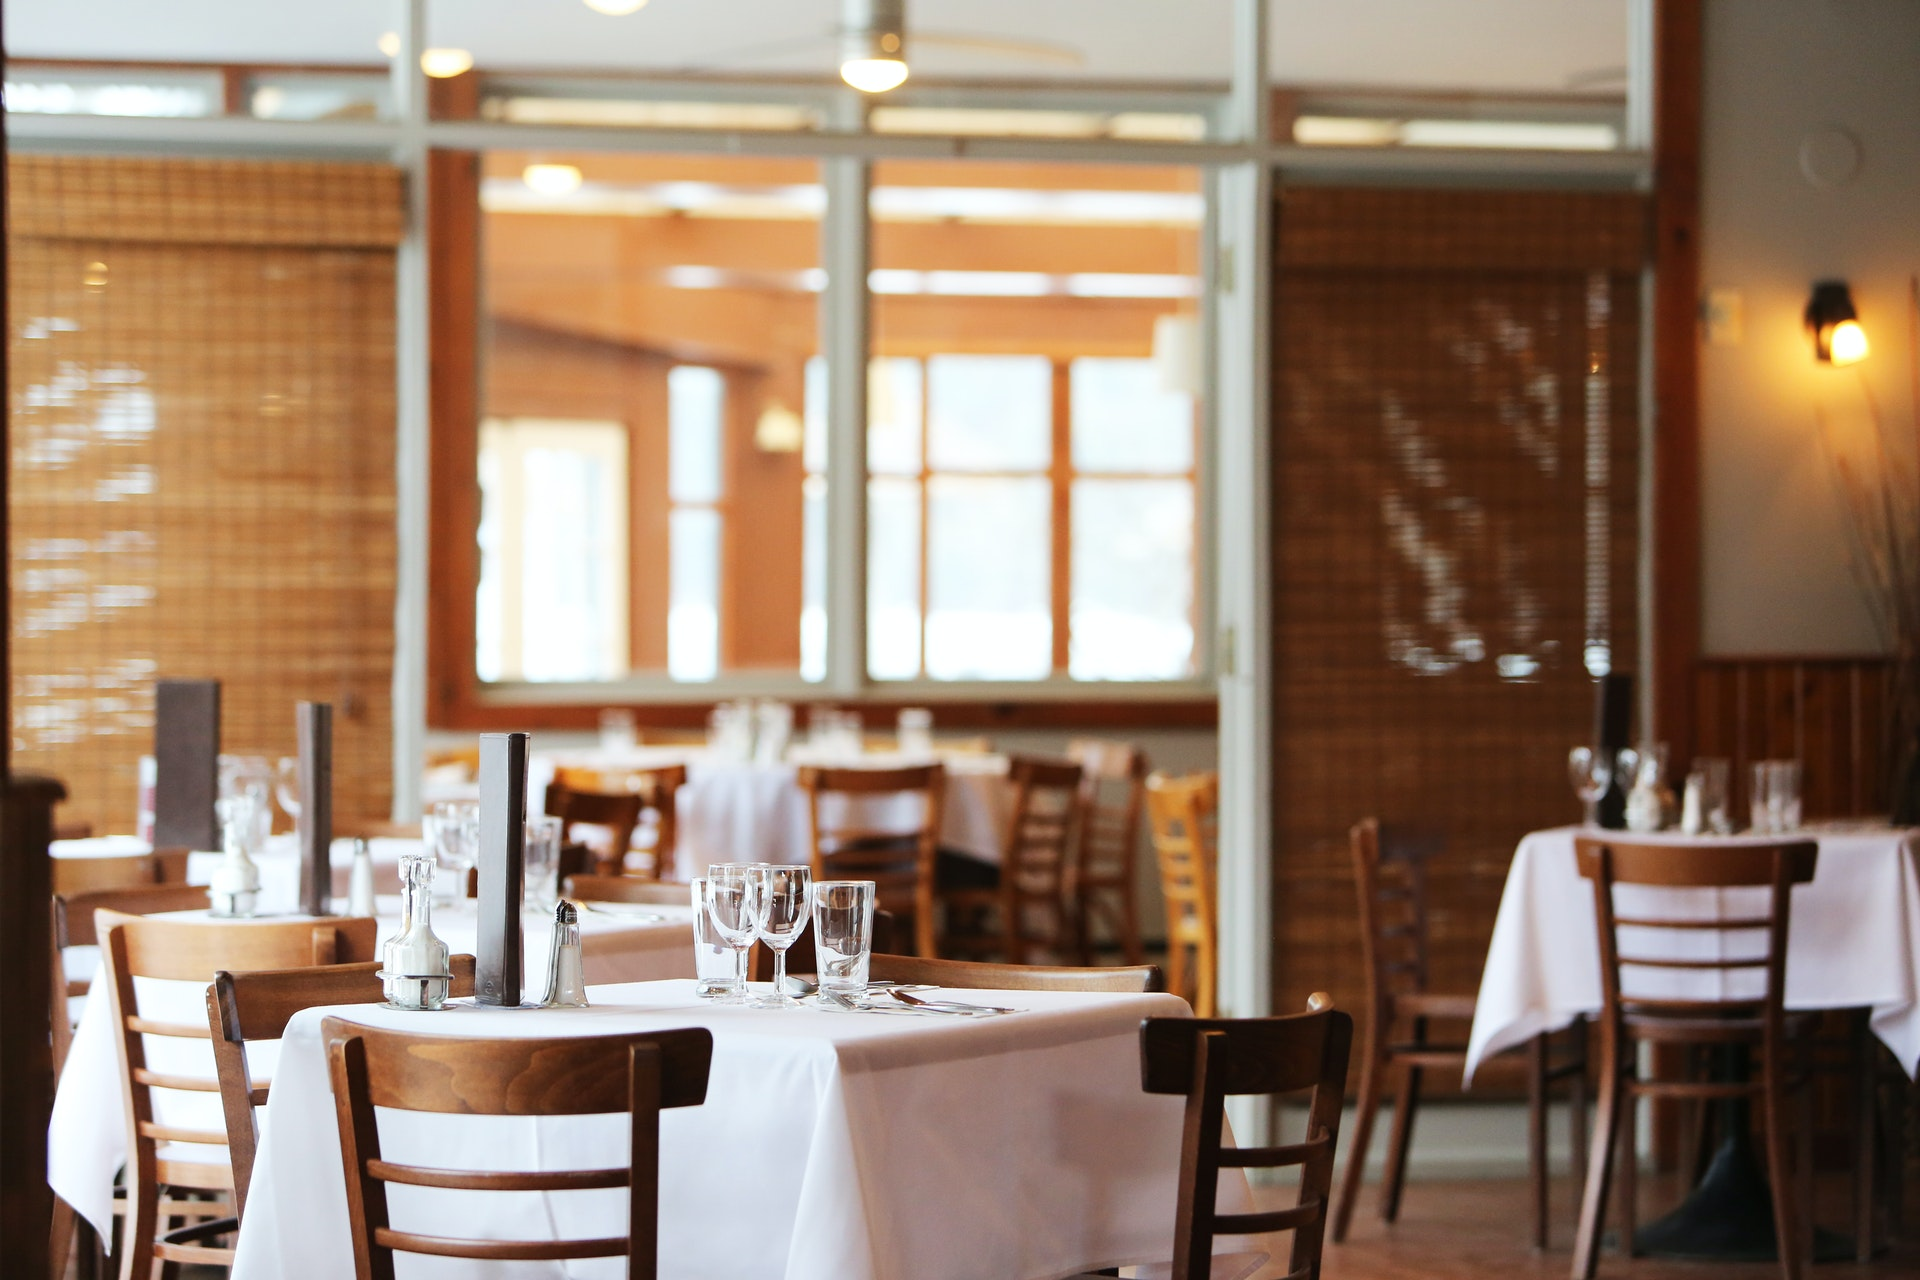 Commercial Cleaner for Your Restaurant